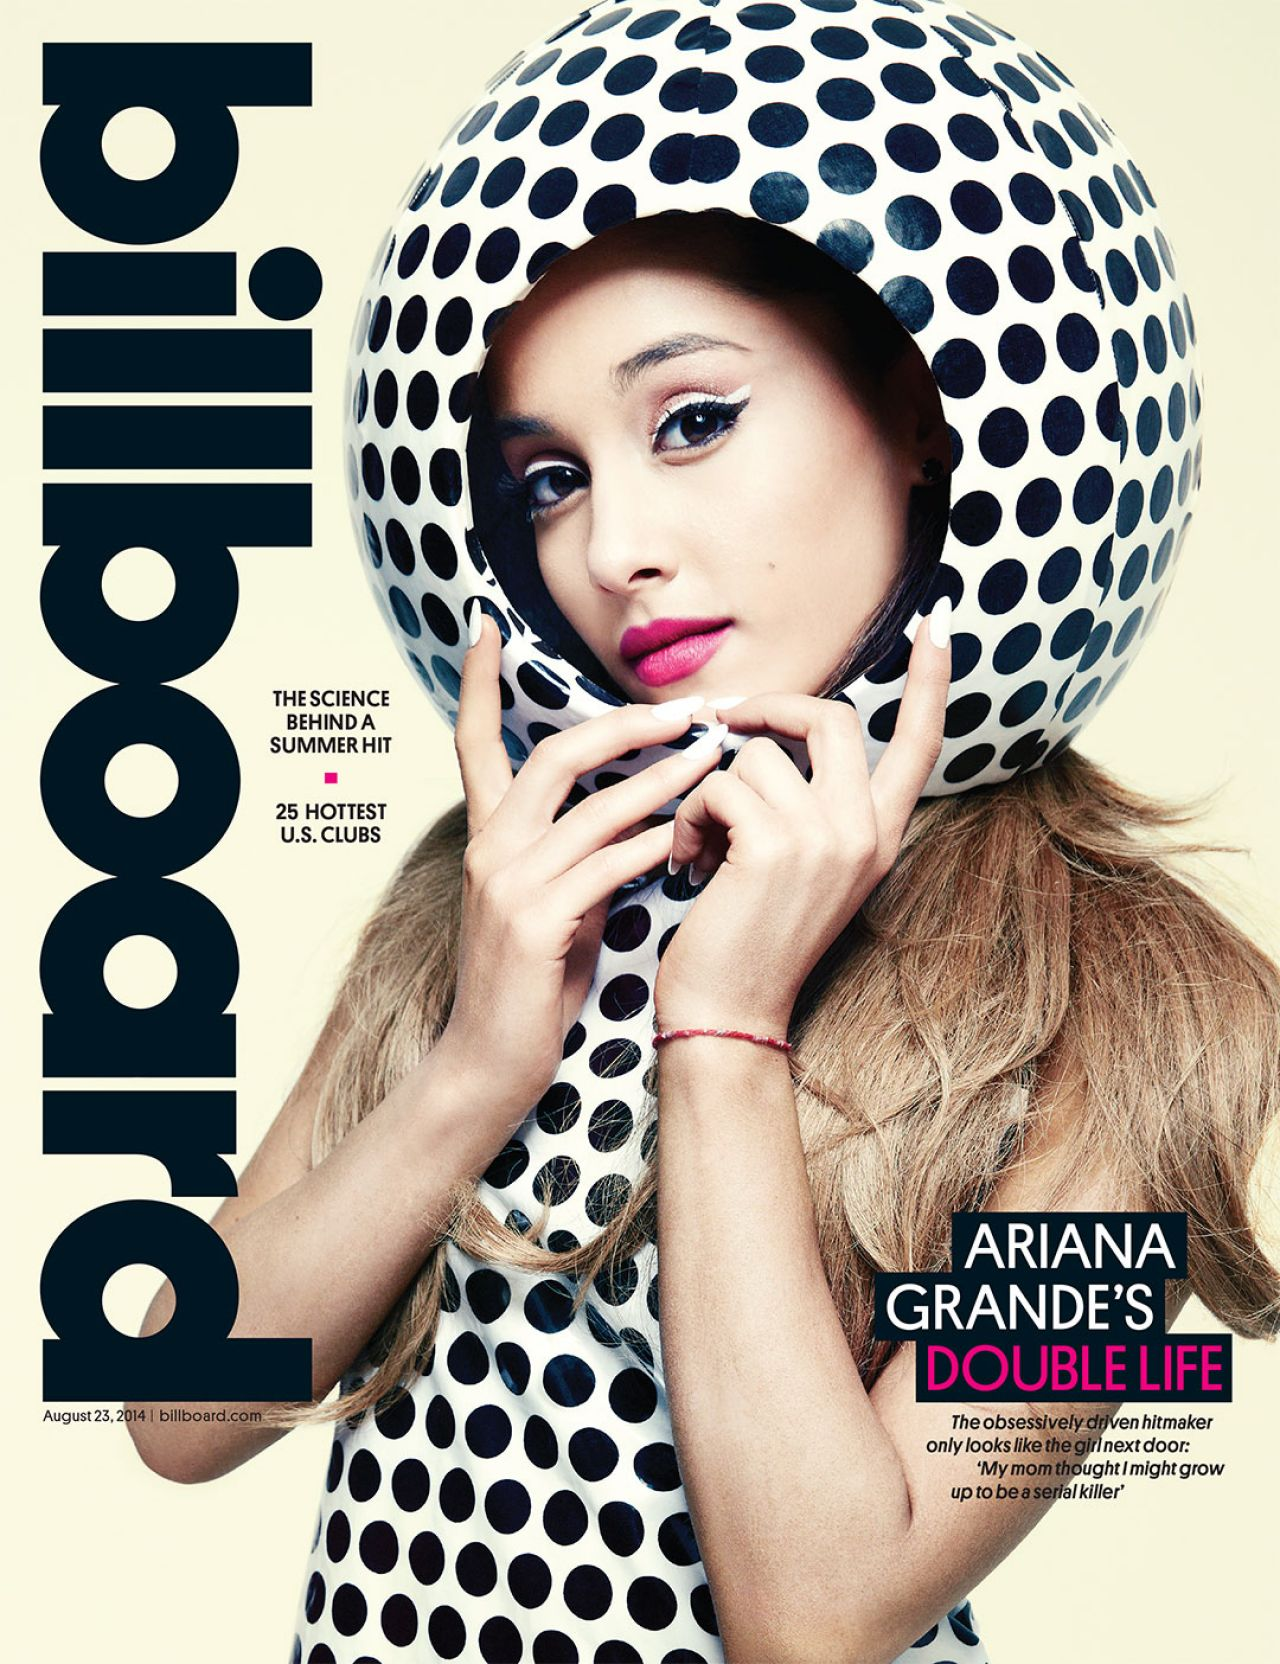 Ariana Grande - Billboard Magazine August 23, 2014 Cover